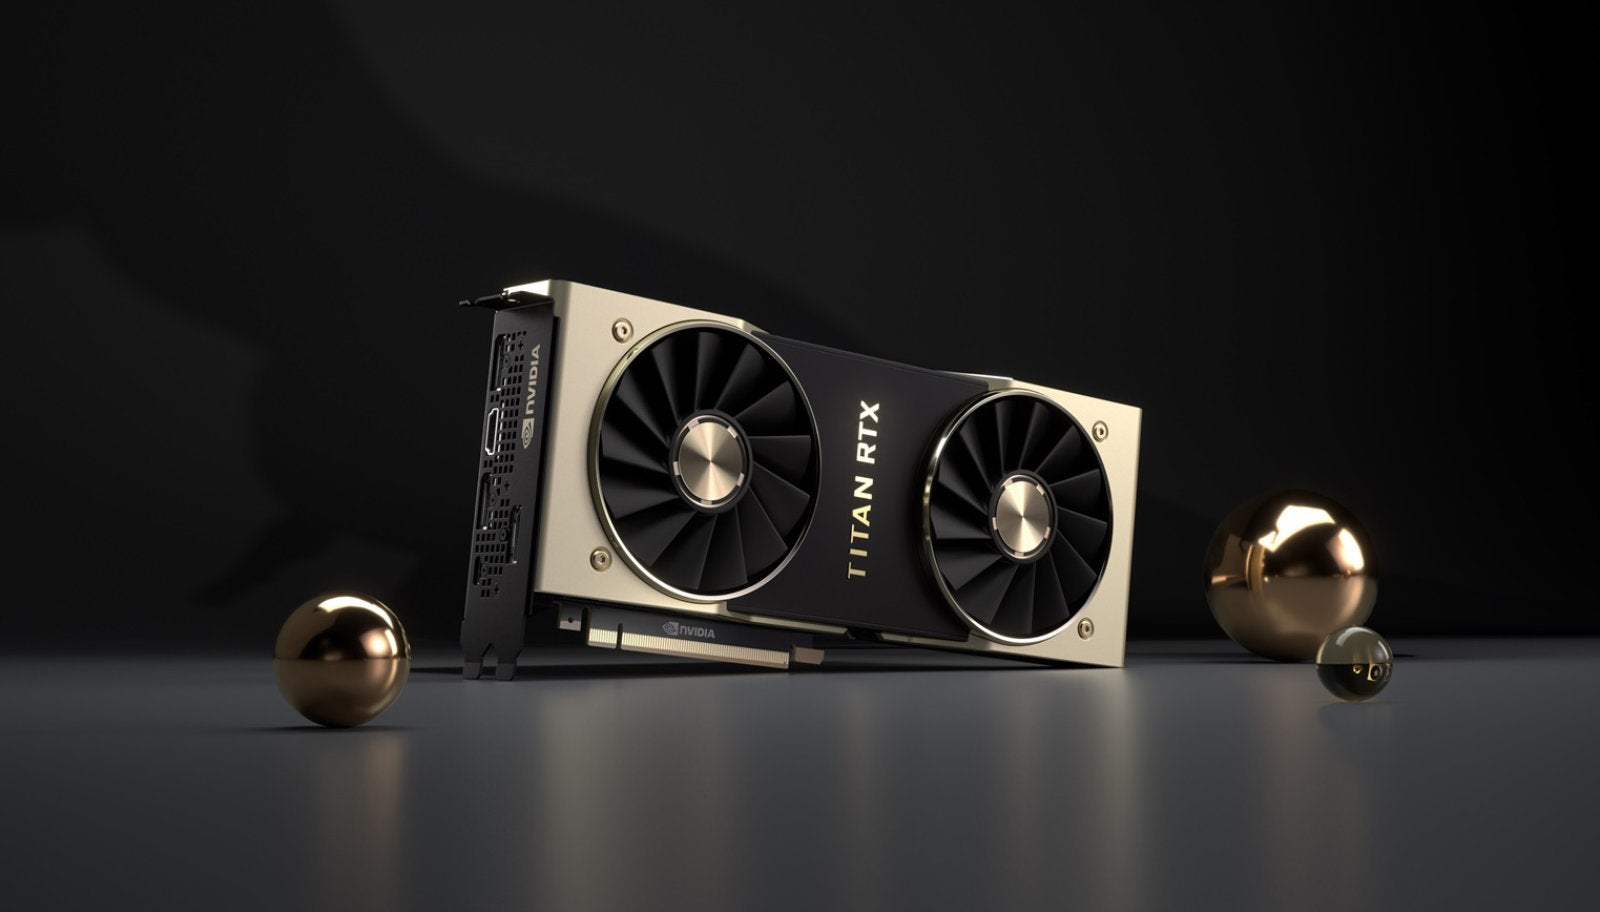 What's The Deal With Nvidia's Ridiculous $4000 Titan RT Graphics Card?